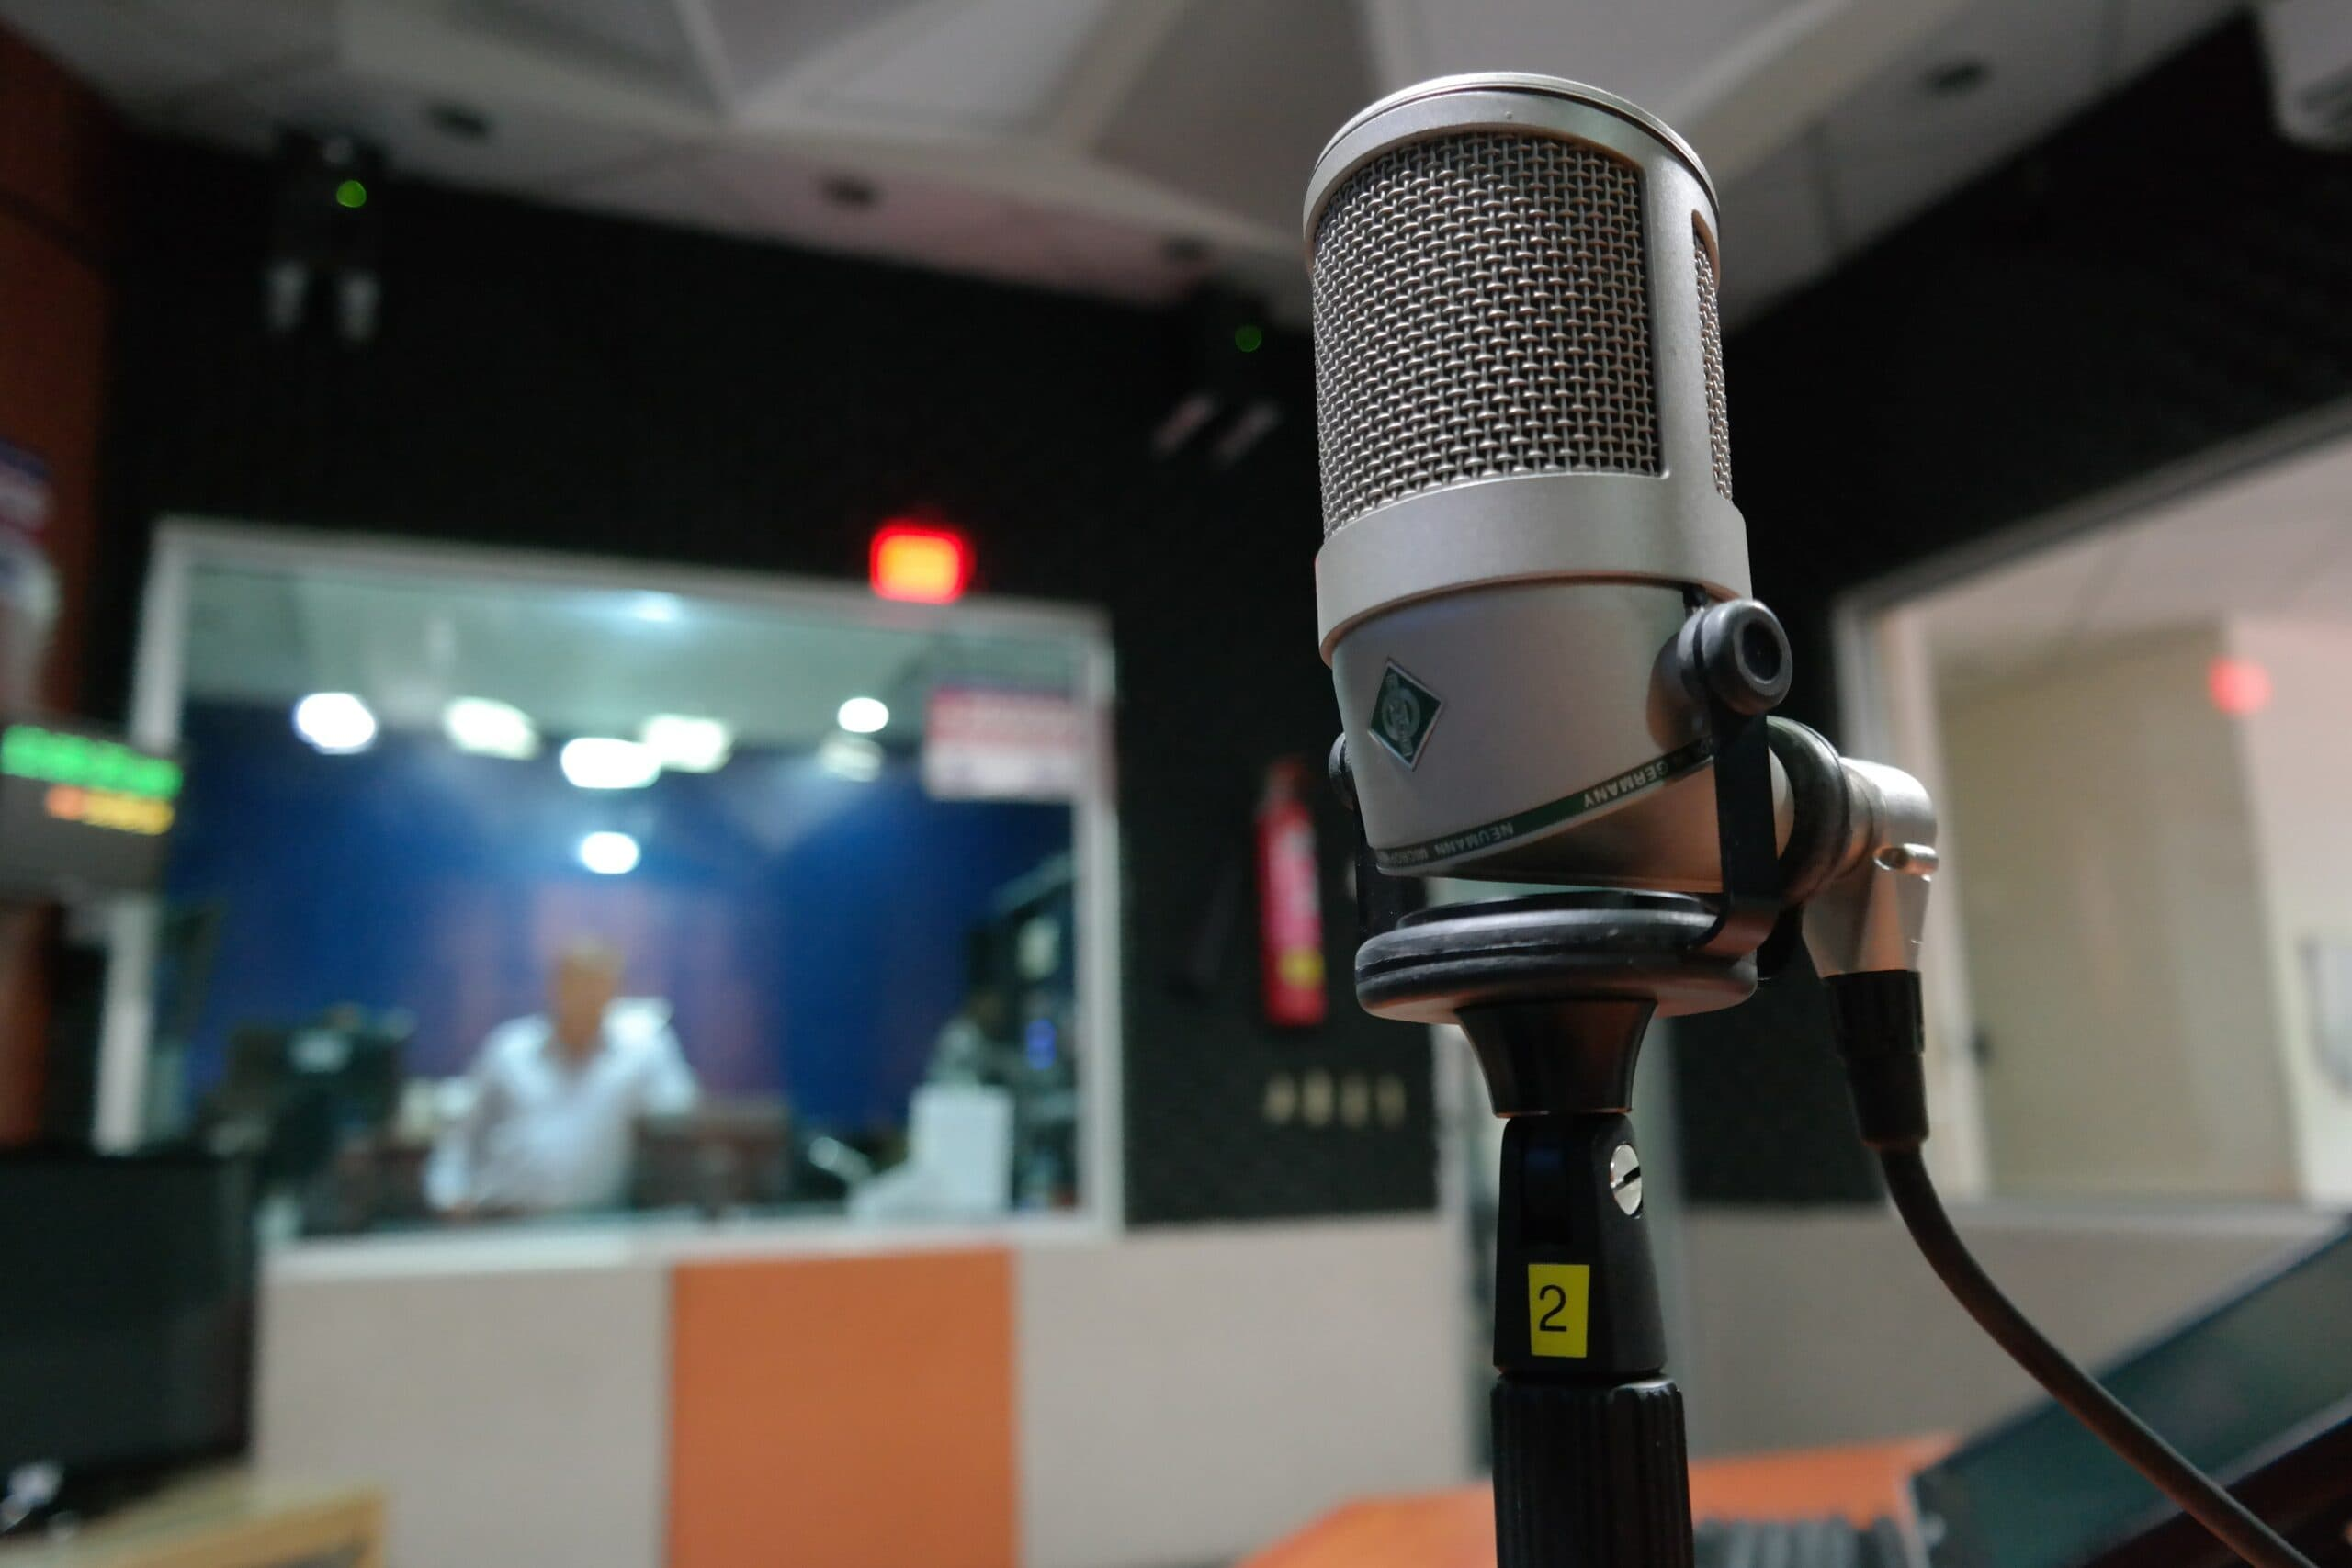 The song doesn't remain the same: as soon as the sound hits the mic, even an excellent one like this Neumann, it loses something.